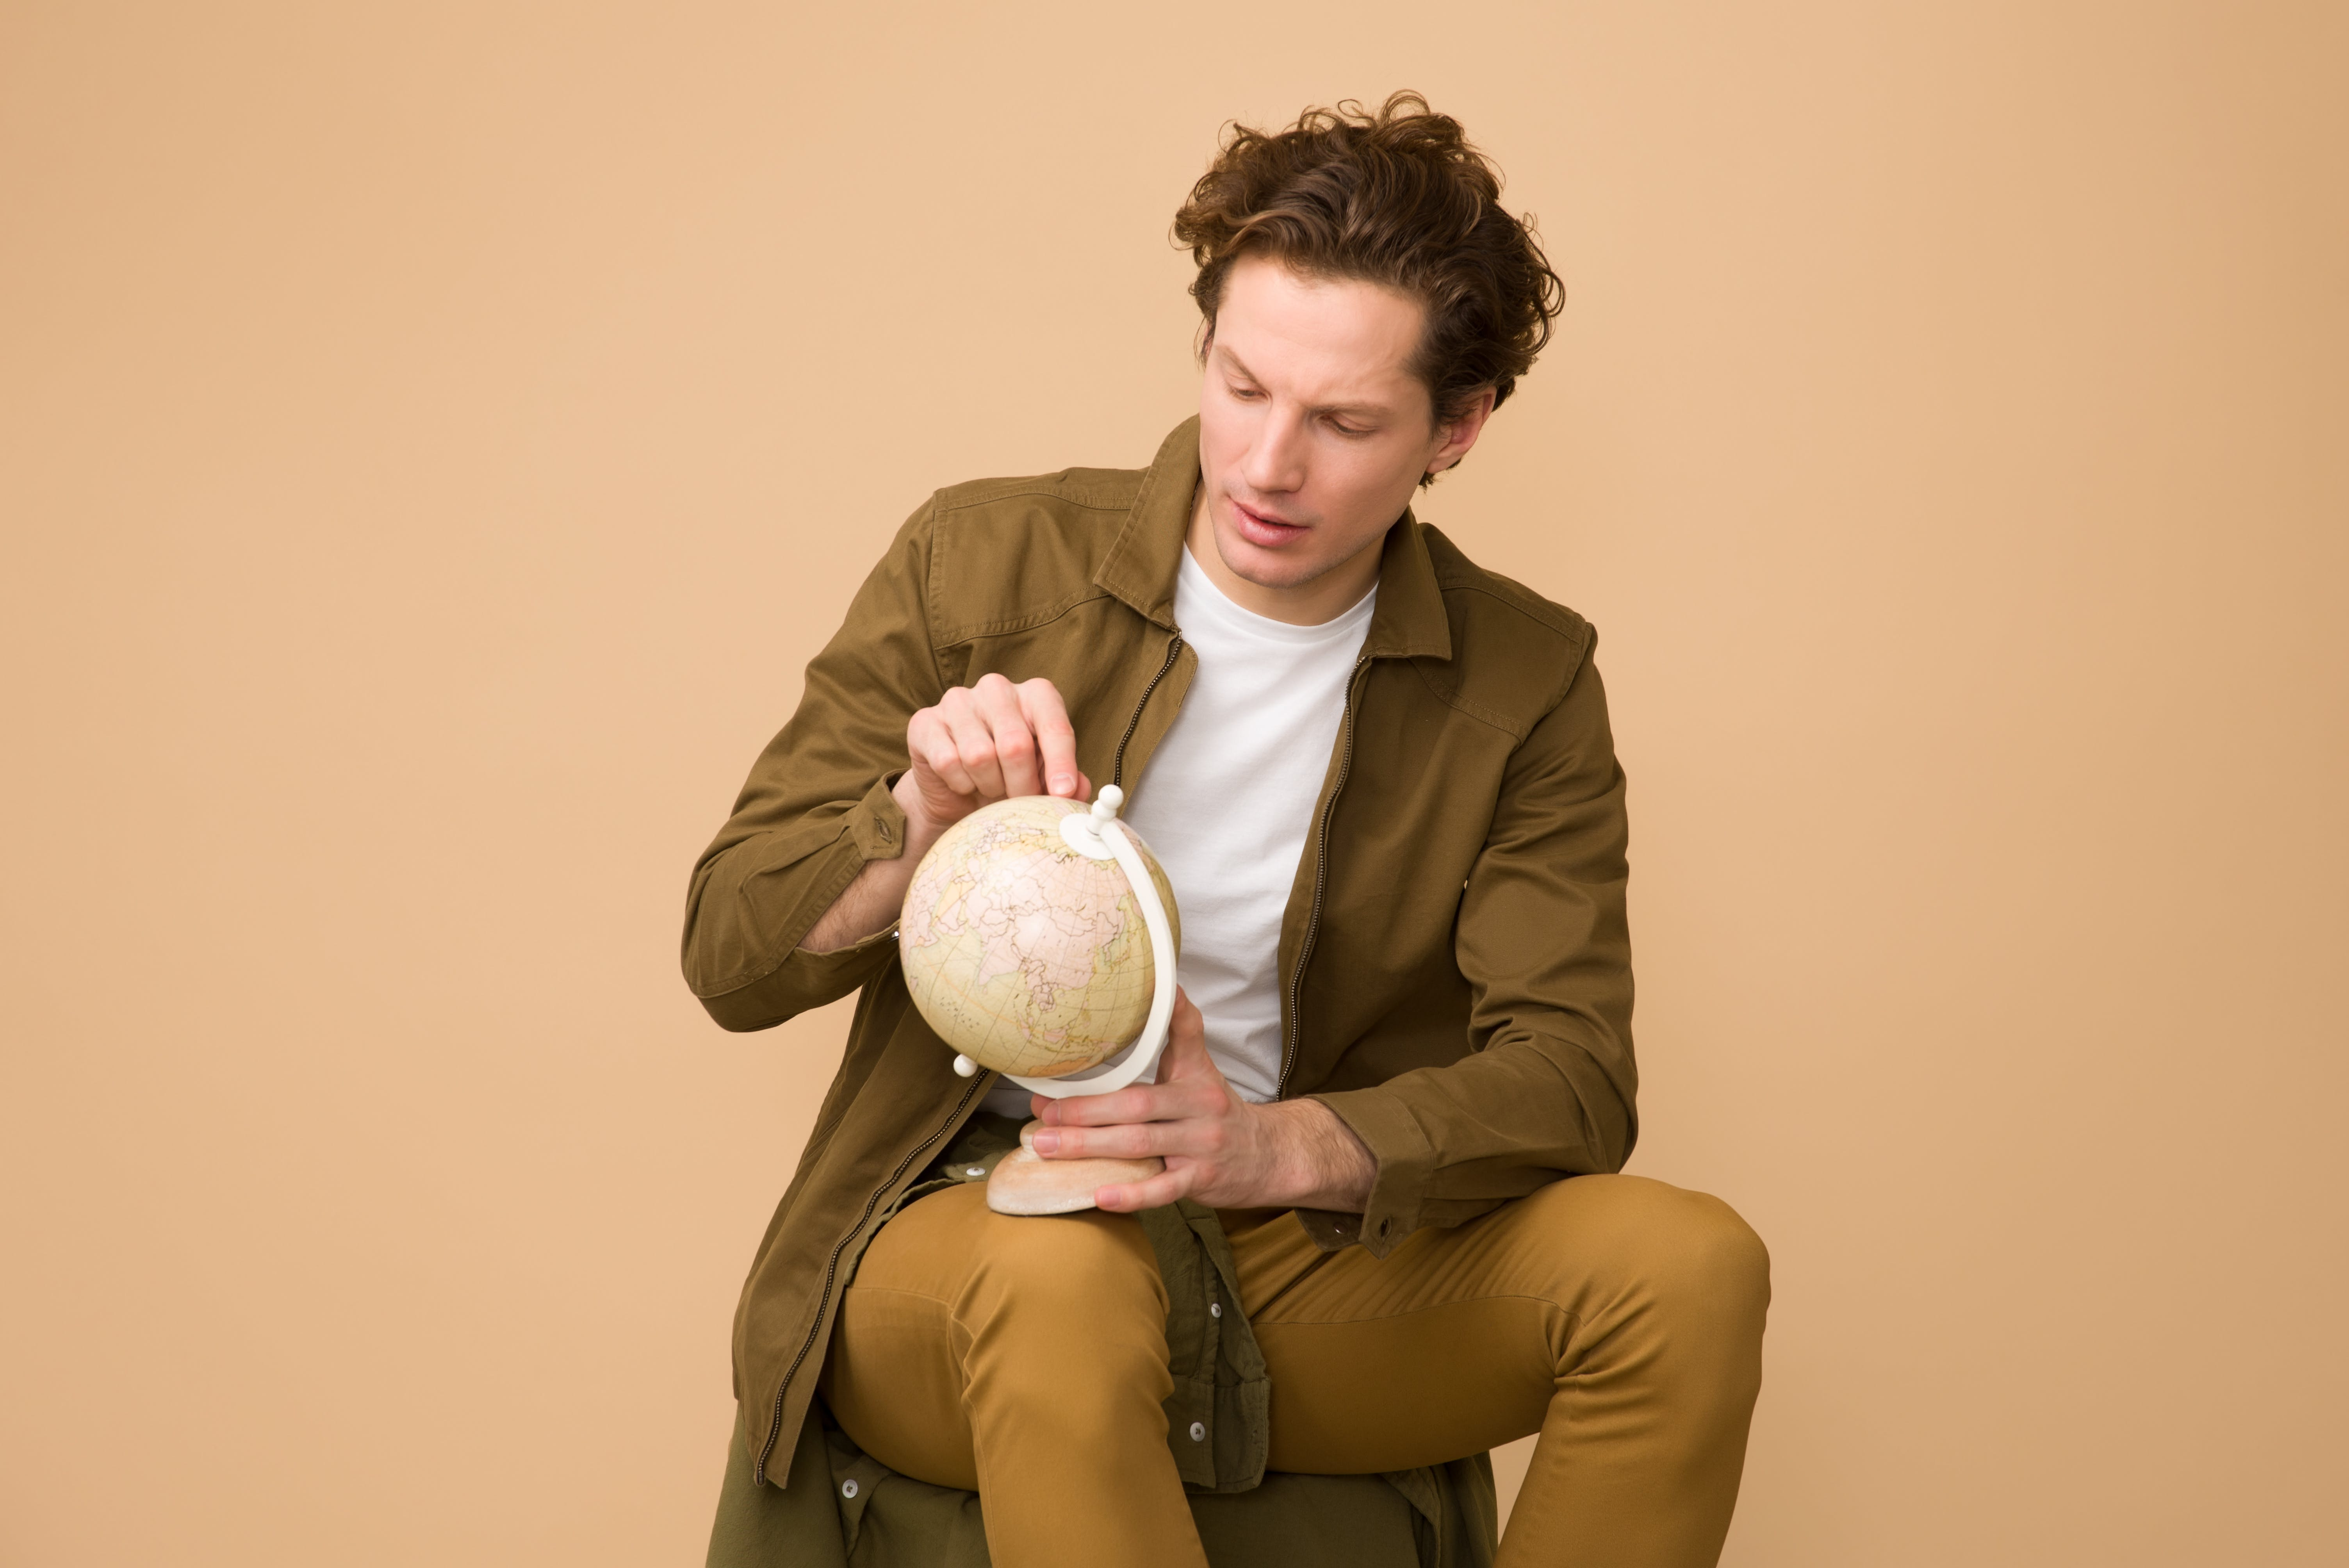 Man Sitting Holding White Desk Globe